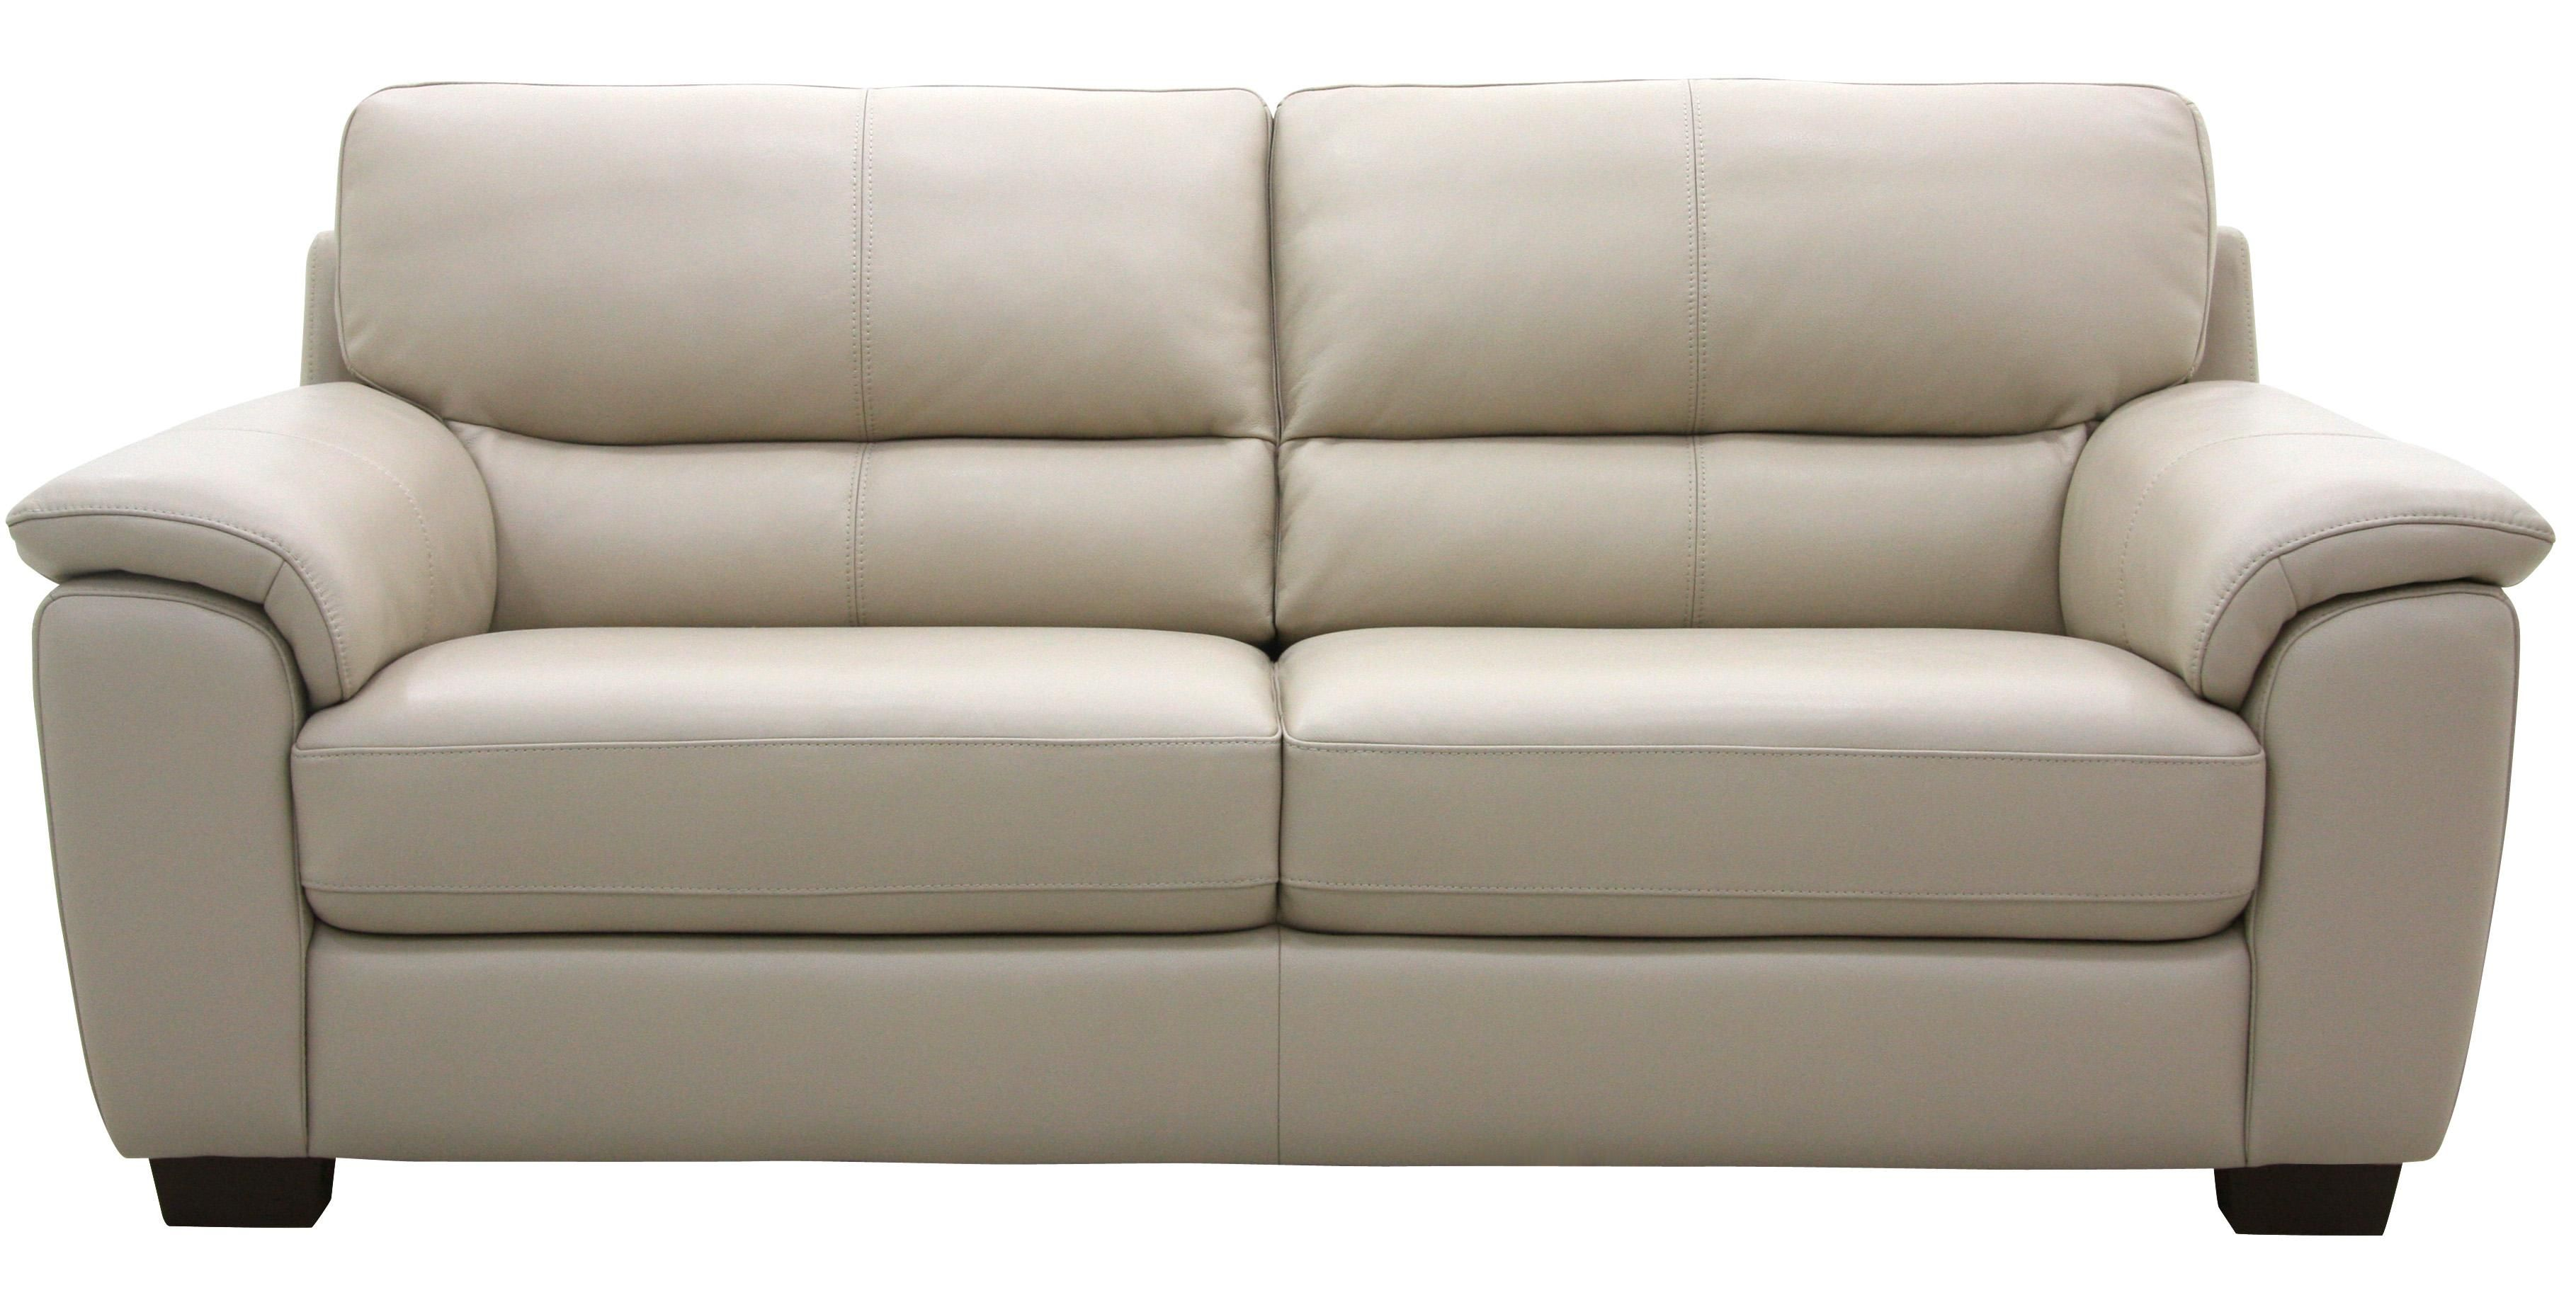 HTL Furniture 9170 Leather Collection featuring loveseat